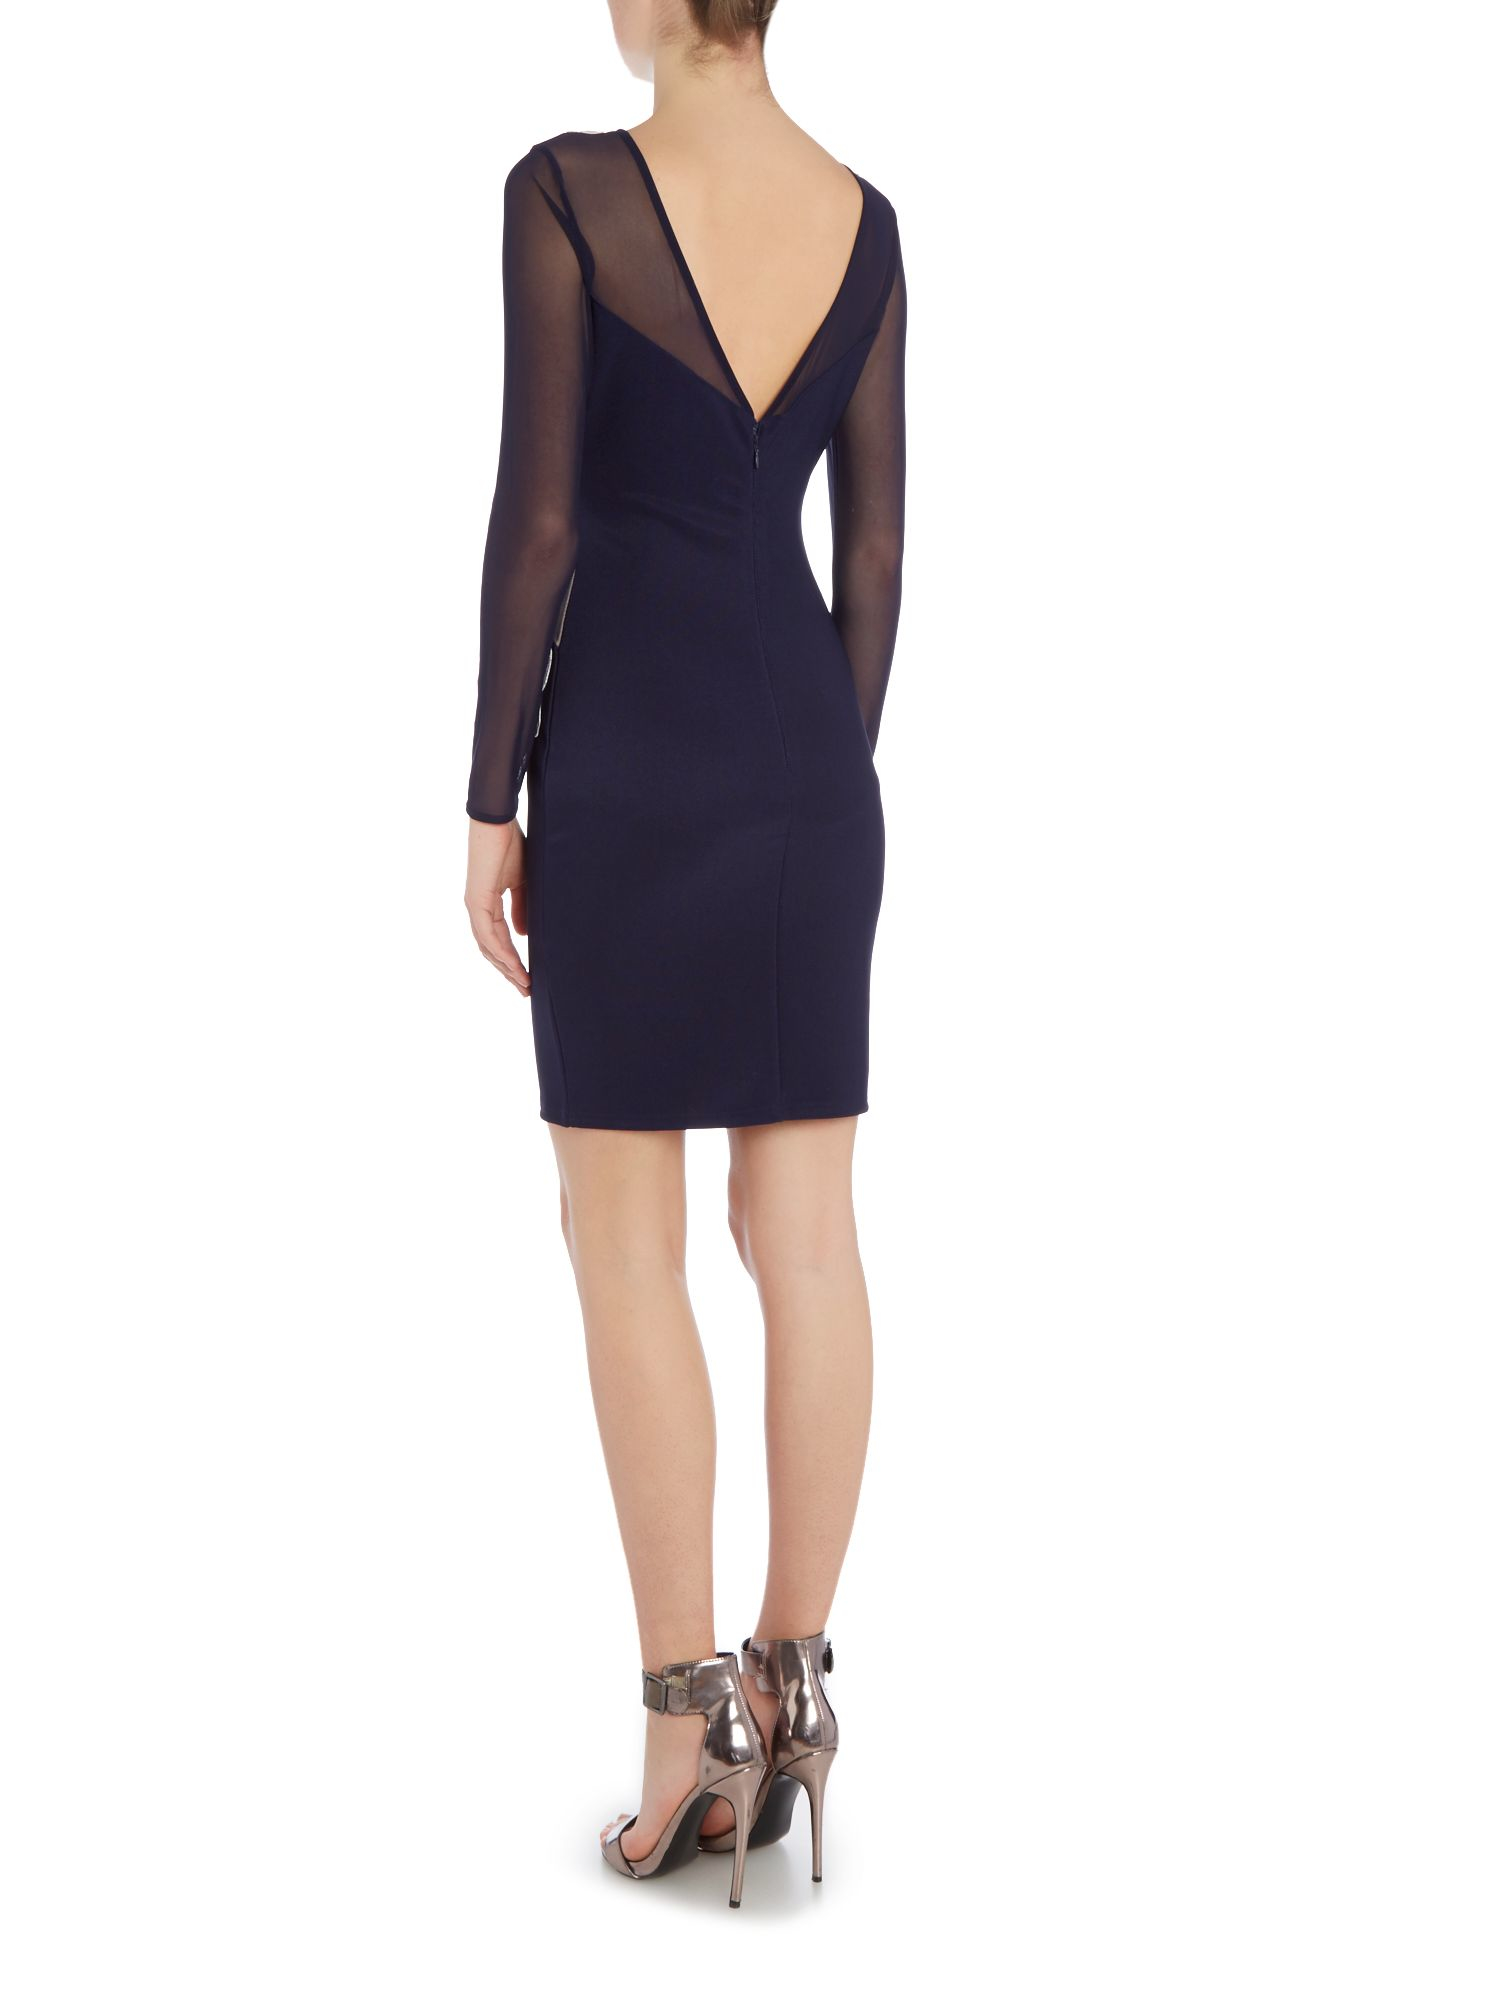 With boots lipsy blue bodycon dress for graduation